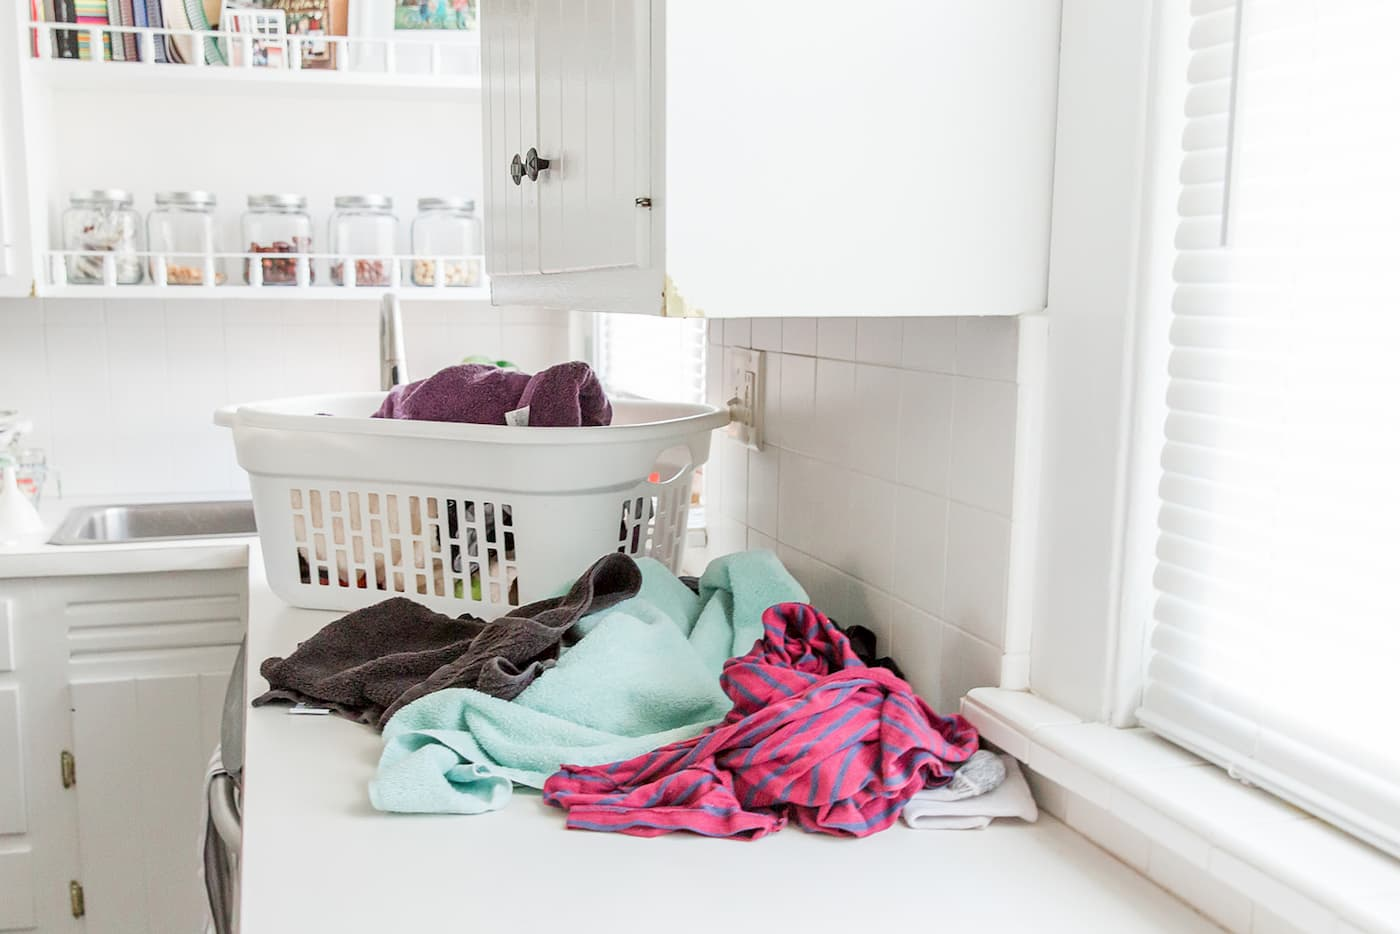 Laundry to Fold on Kitchen Countertop